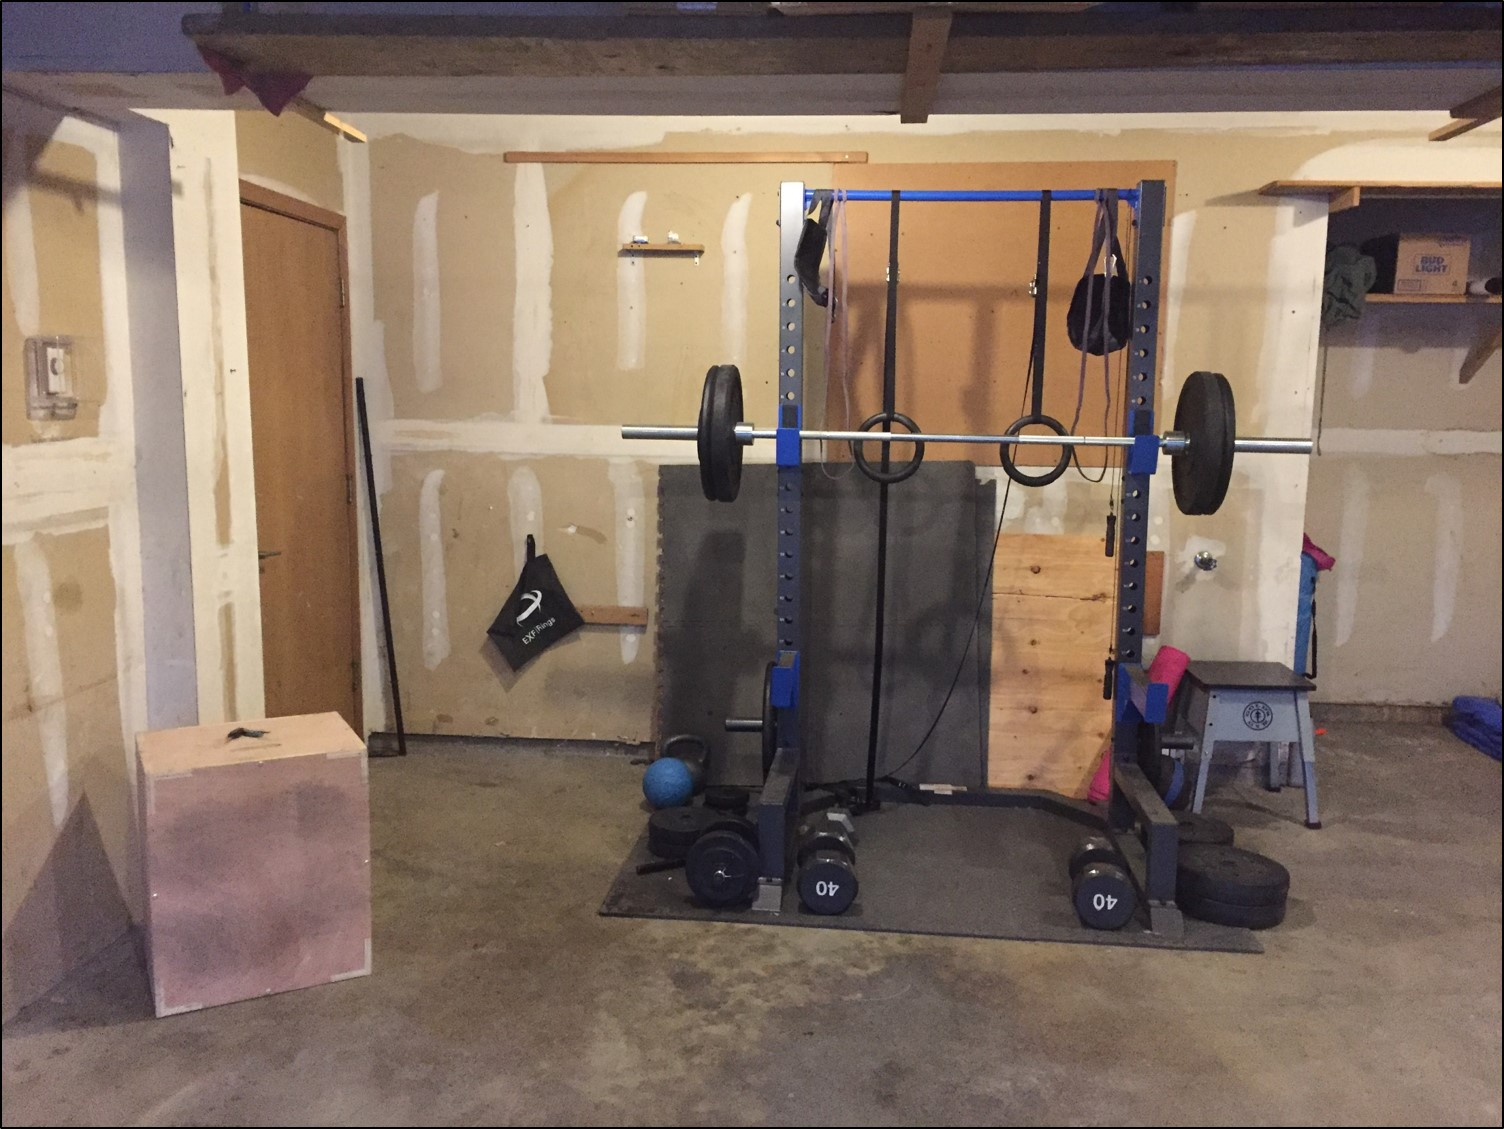 Build your own garage gym and ditch the monthly membership fees